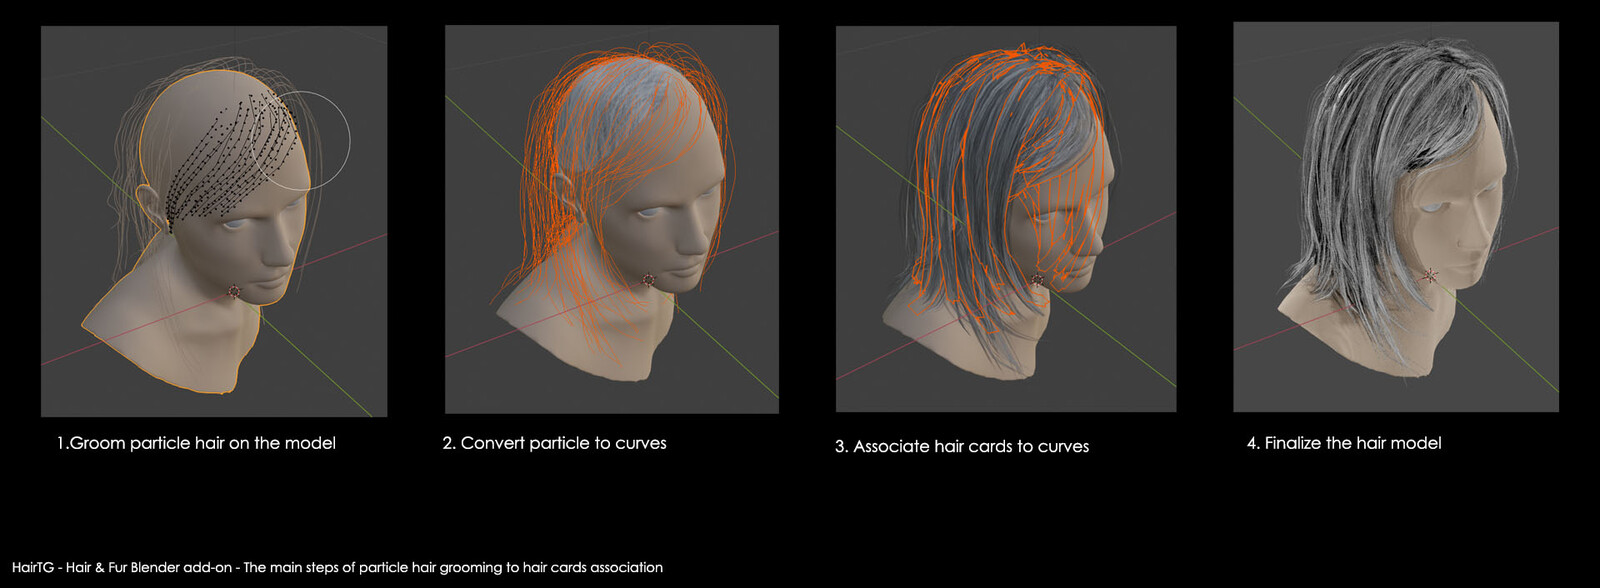 Blender add-on: the main steps of associating hair cards to particle hair grooming